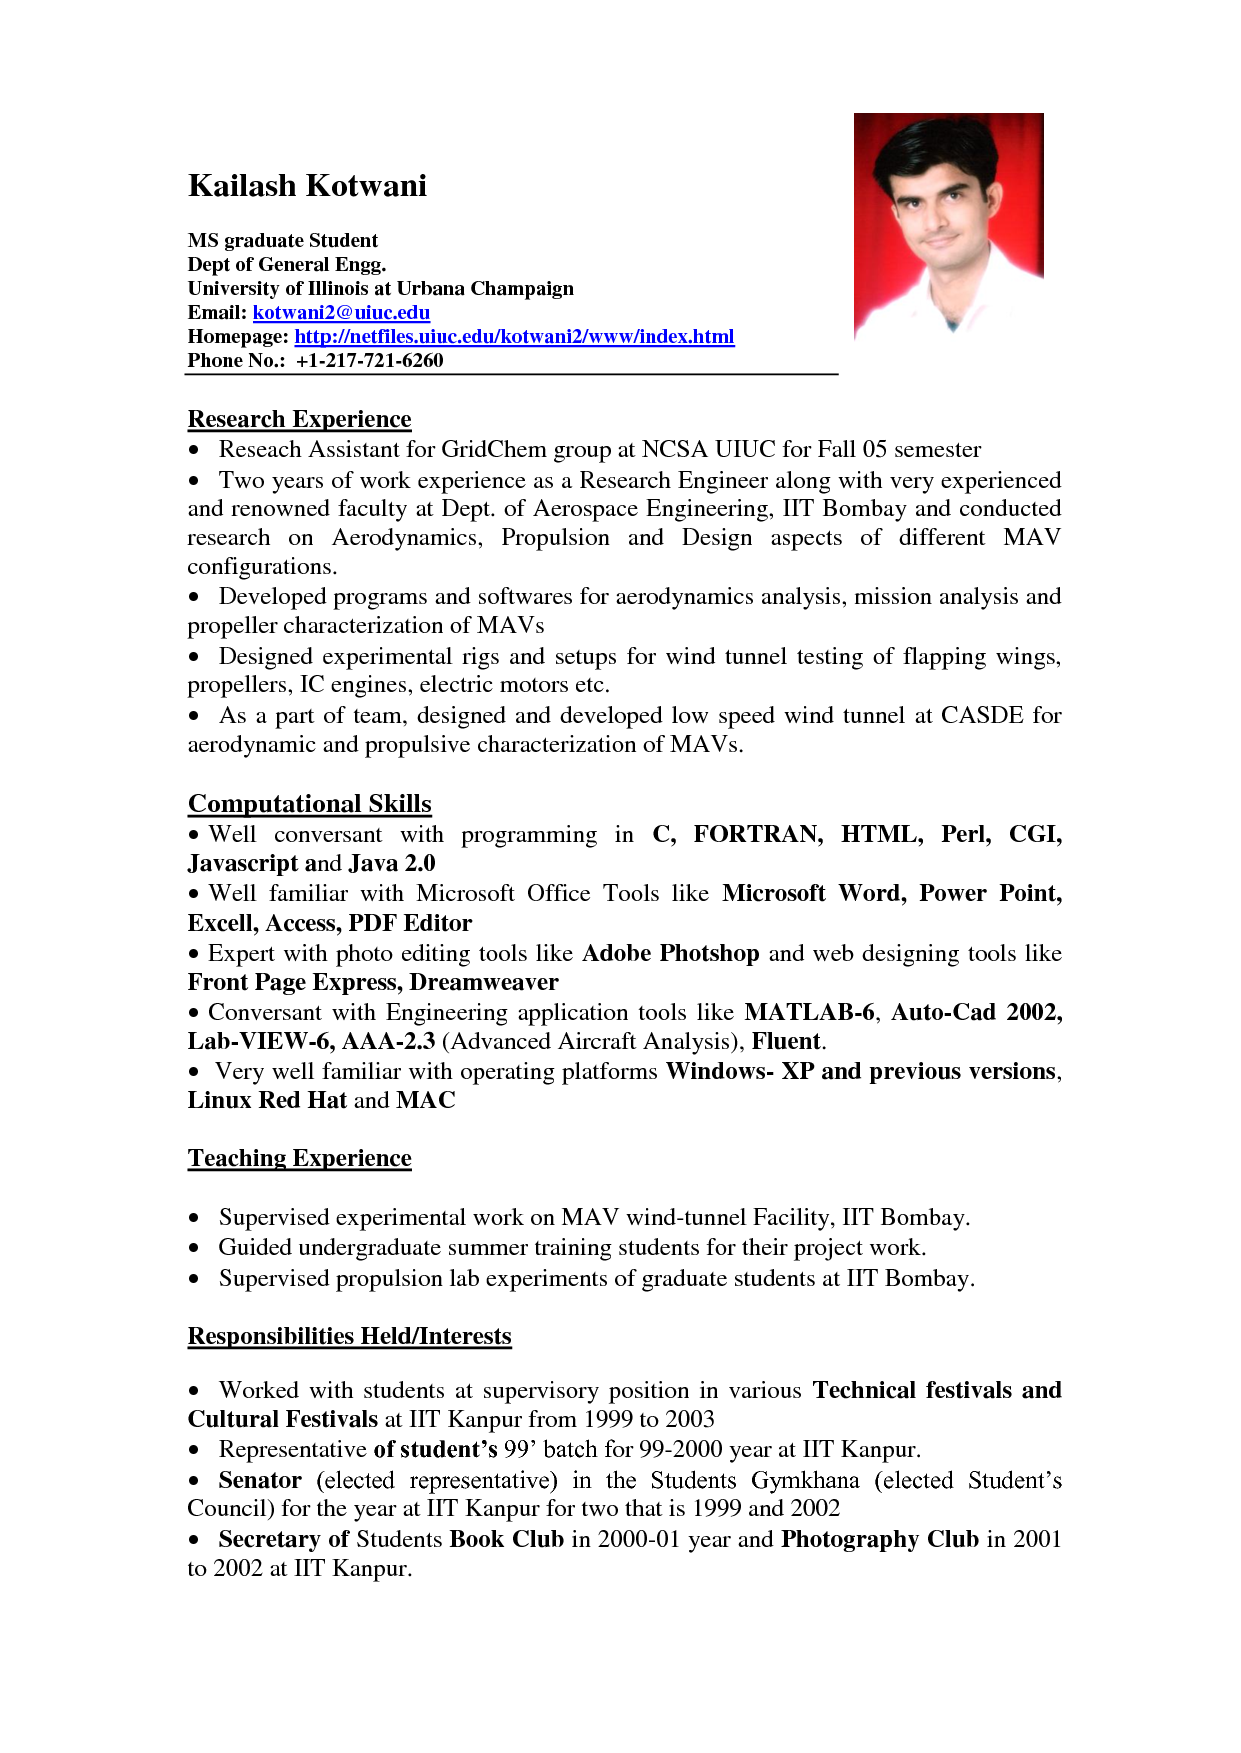 11 Student Resume Samples No Experience | Resume | Pinterest ...